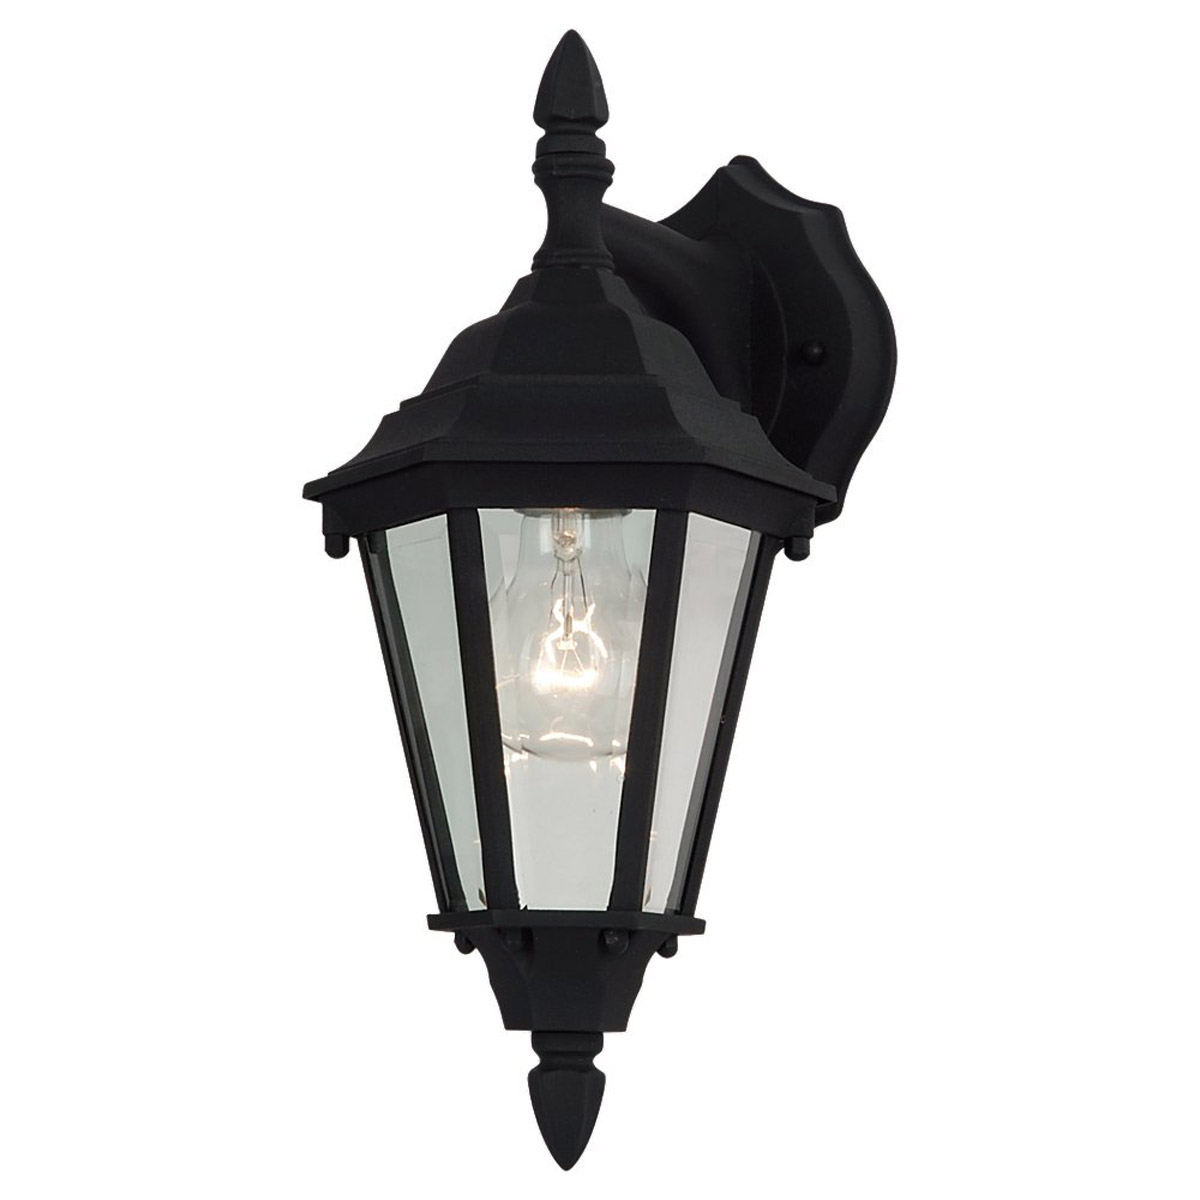 Sea Gull Lighting Bakersville 1 Light Outdoor Wall Lantern in Black 88938-12 photo